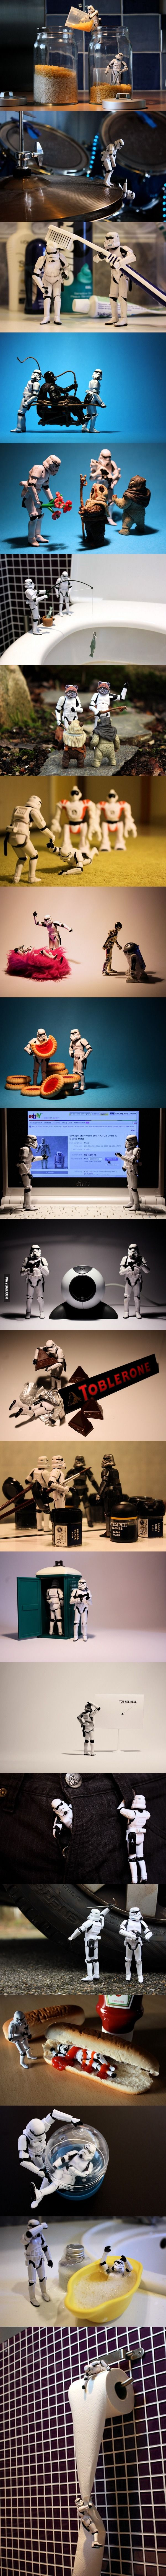 A day in the life of stormtrooper.